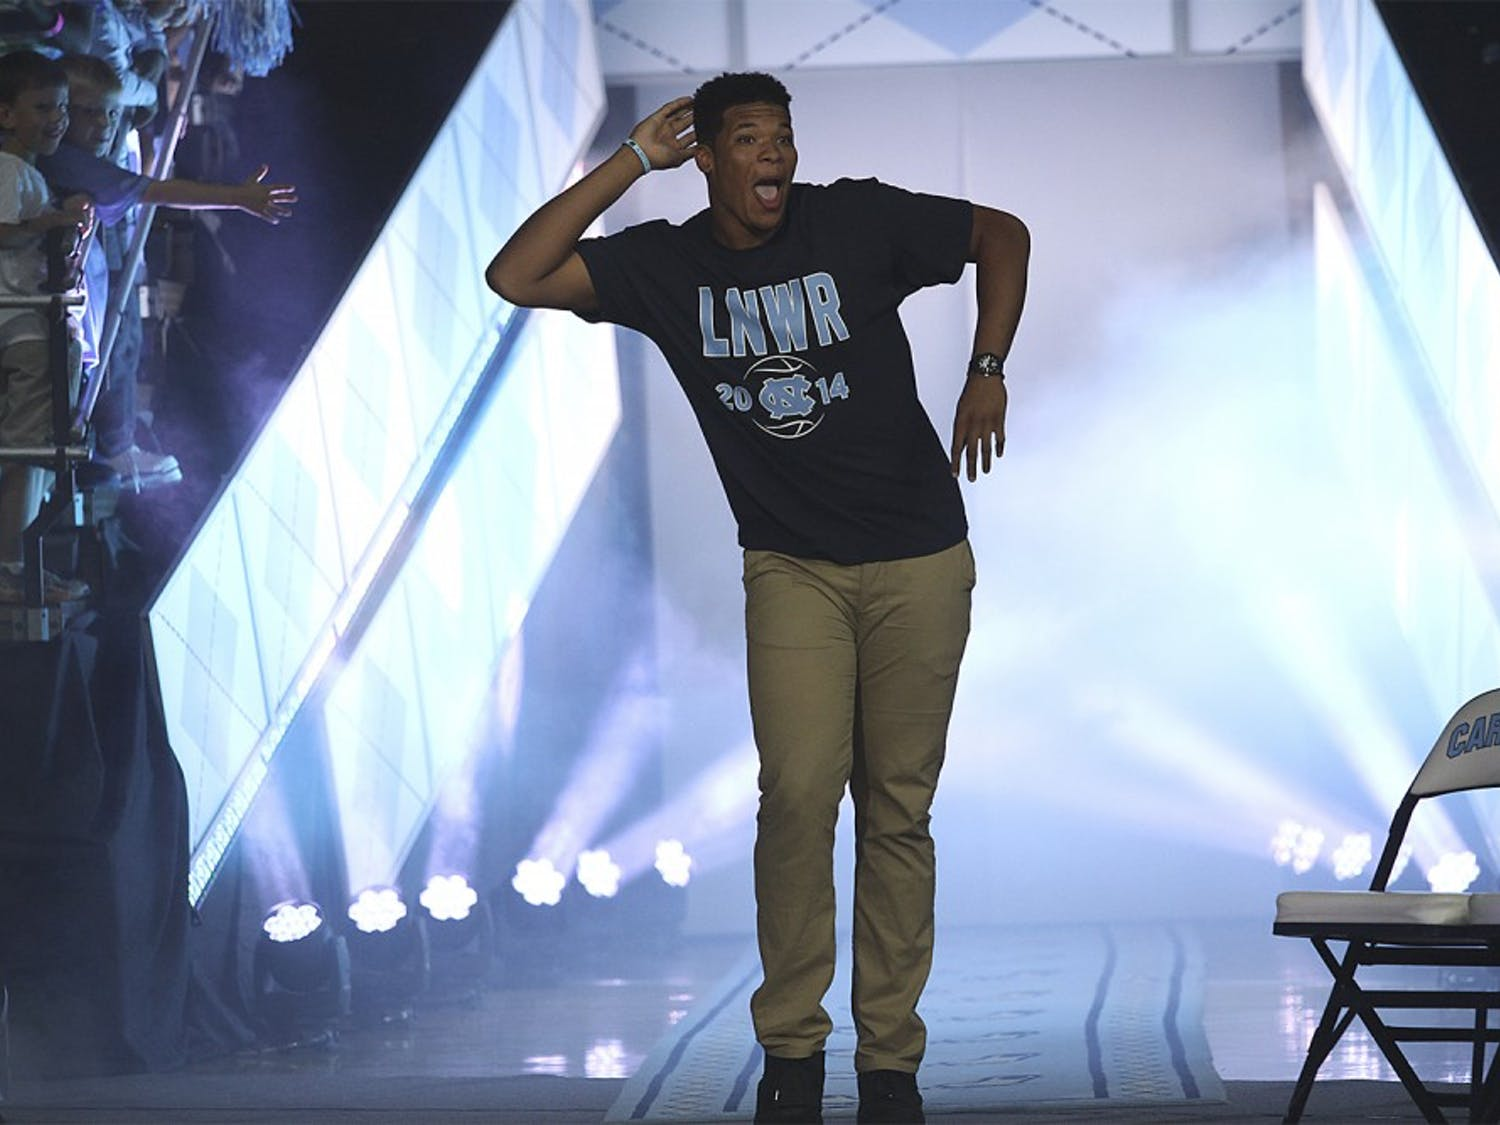 The men's and women's basketball teams took to the Dean Smith Center on Firday for Late Night with Roy, the annual kick-off to basketball season. Both teams played a scrimmage in between skits and dances.